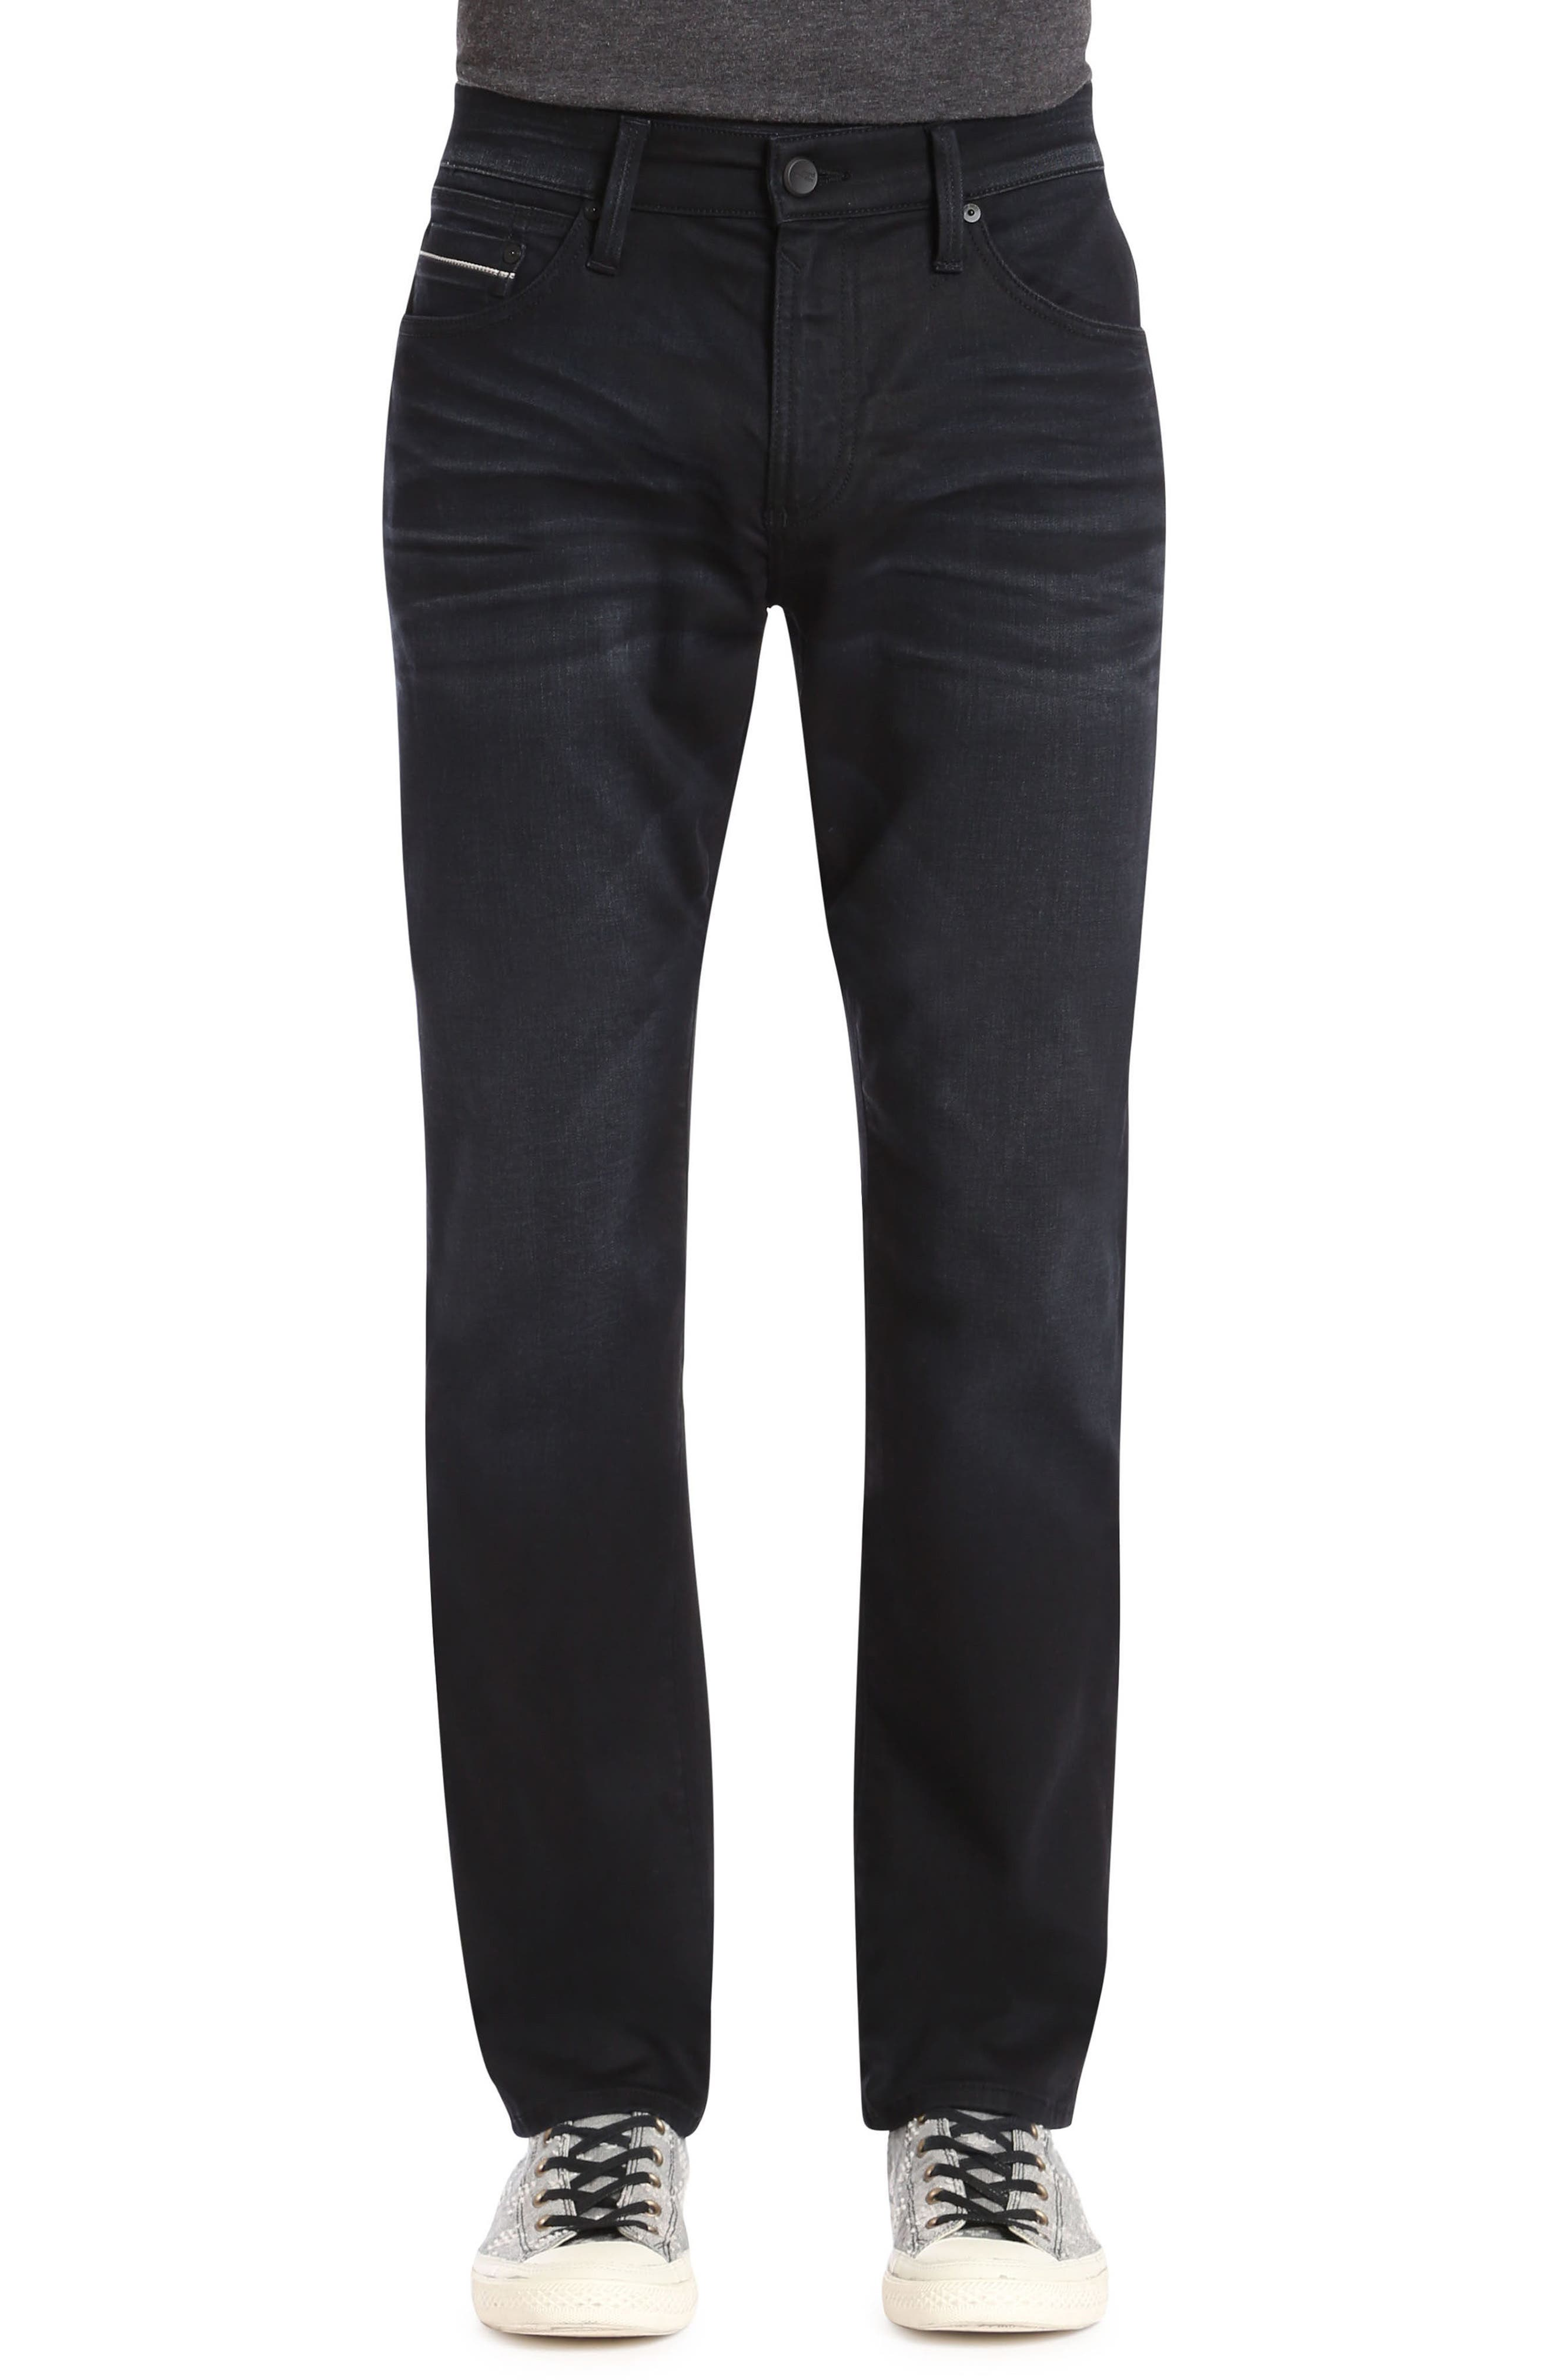 Marcus Slim Straight Leg Jeans,                             Main thumbnail 1, color,                             DEEP BLUE WHITE EDGE